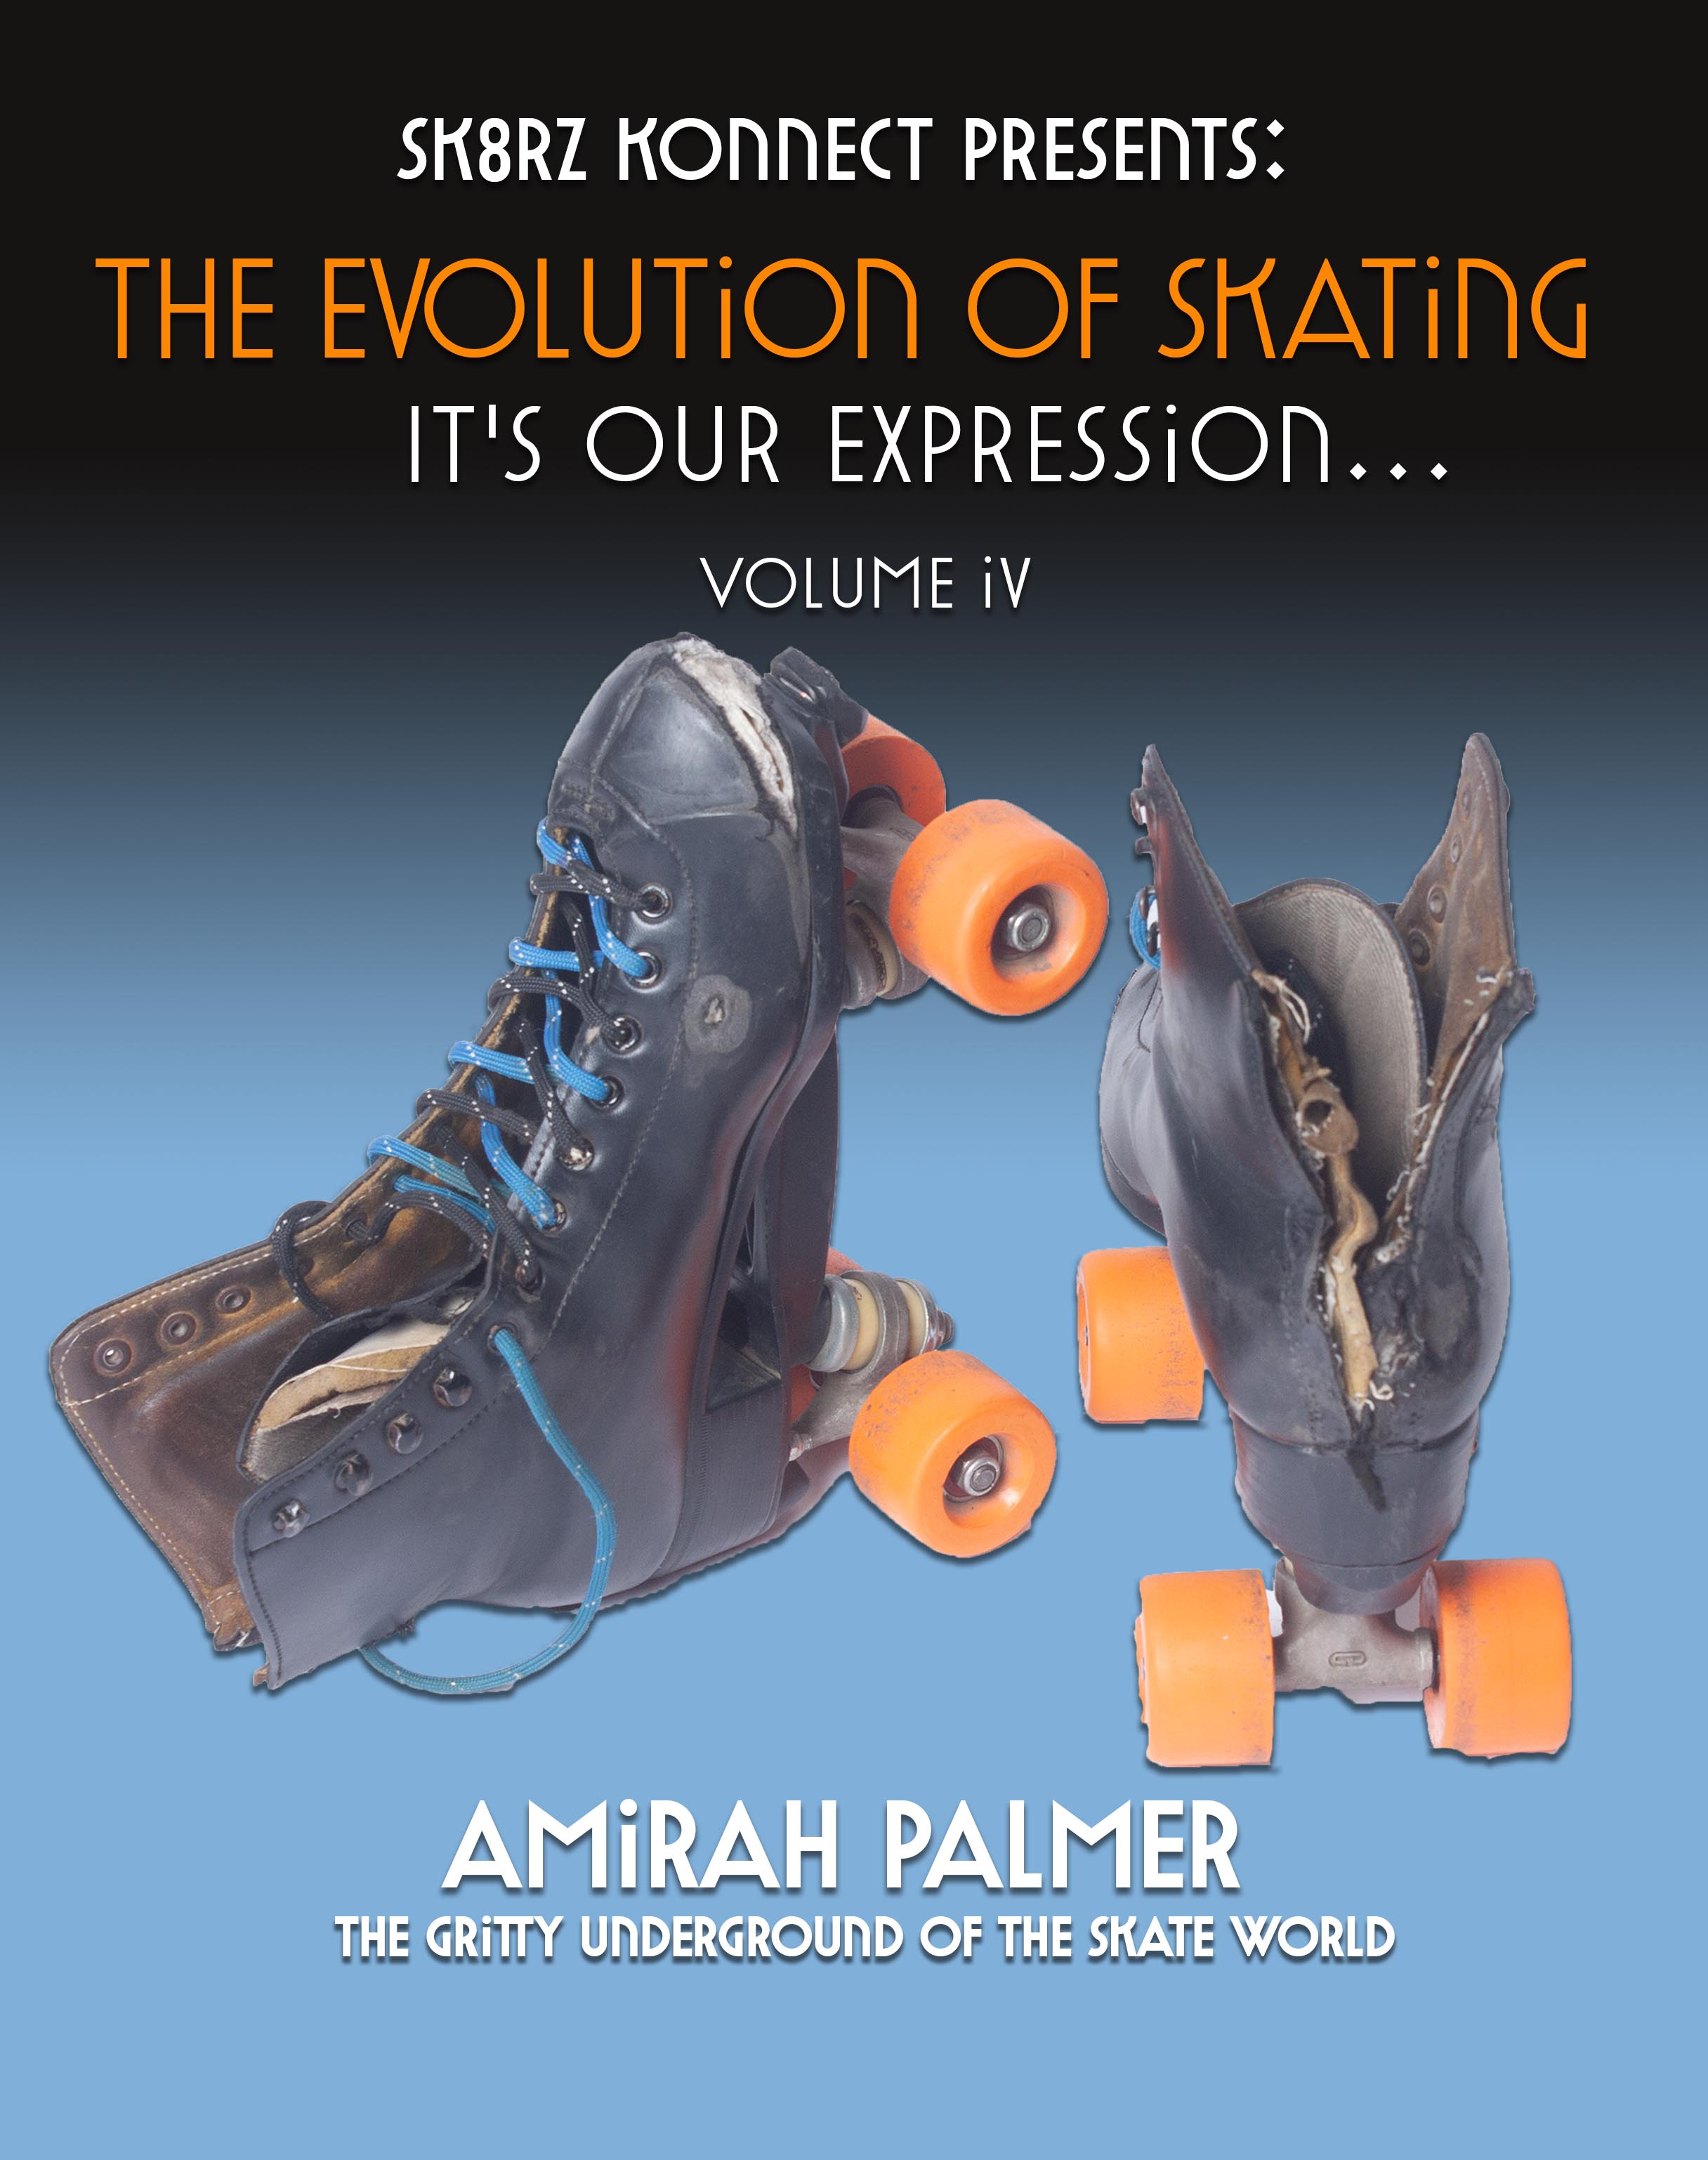 The Evolution of a Culture - Roller Skating, passion and artistry